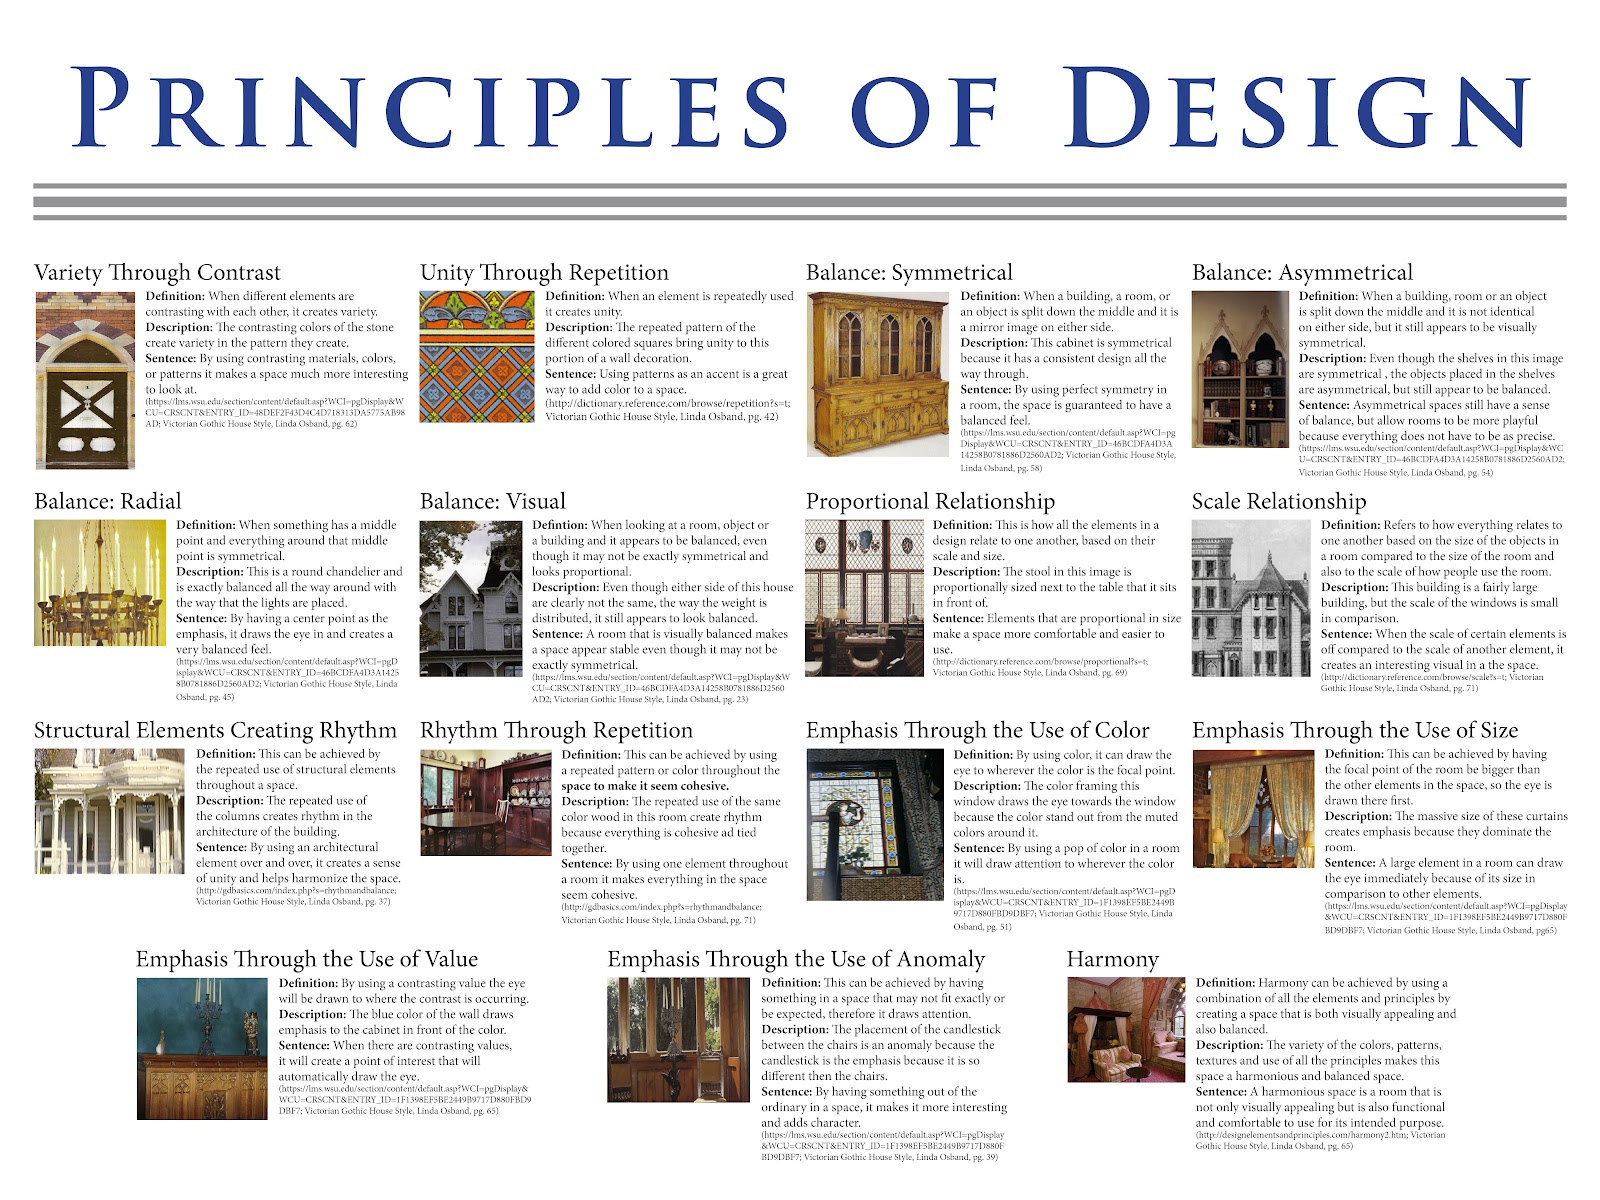 Annie borges design portfolio principles of design for Interior design 7 elements